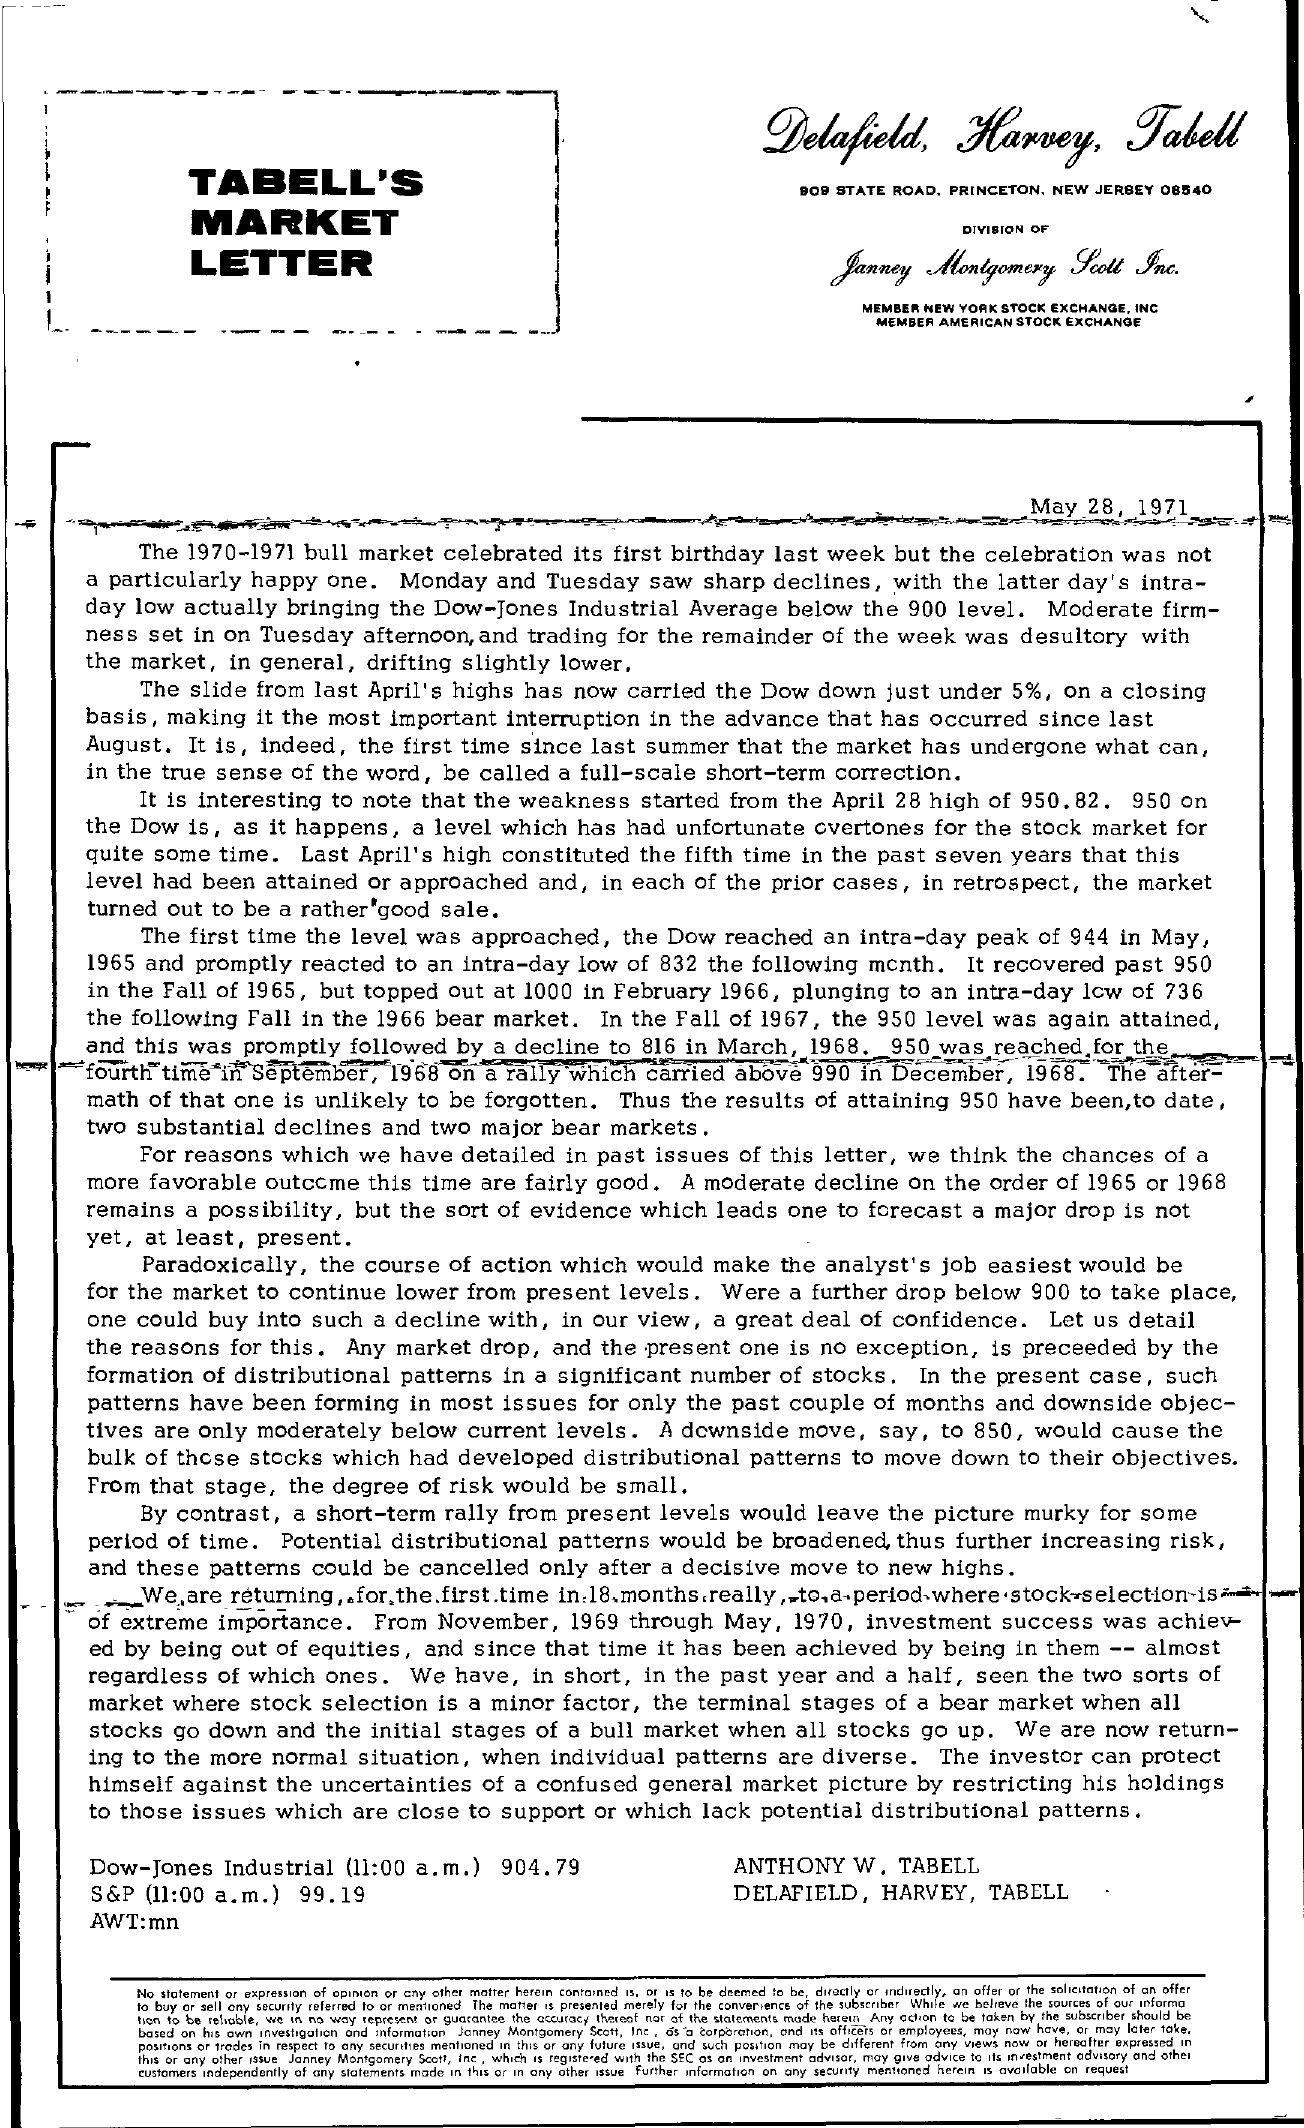 Tabell's Market Letter - May 28, 1971